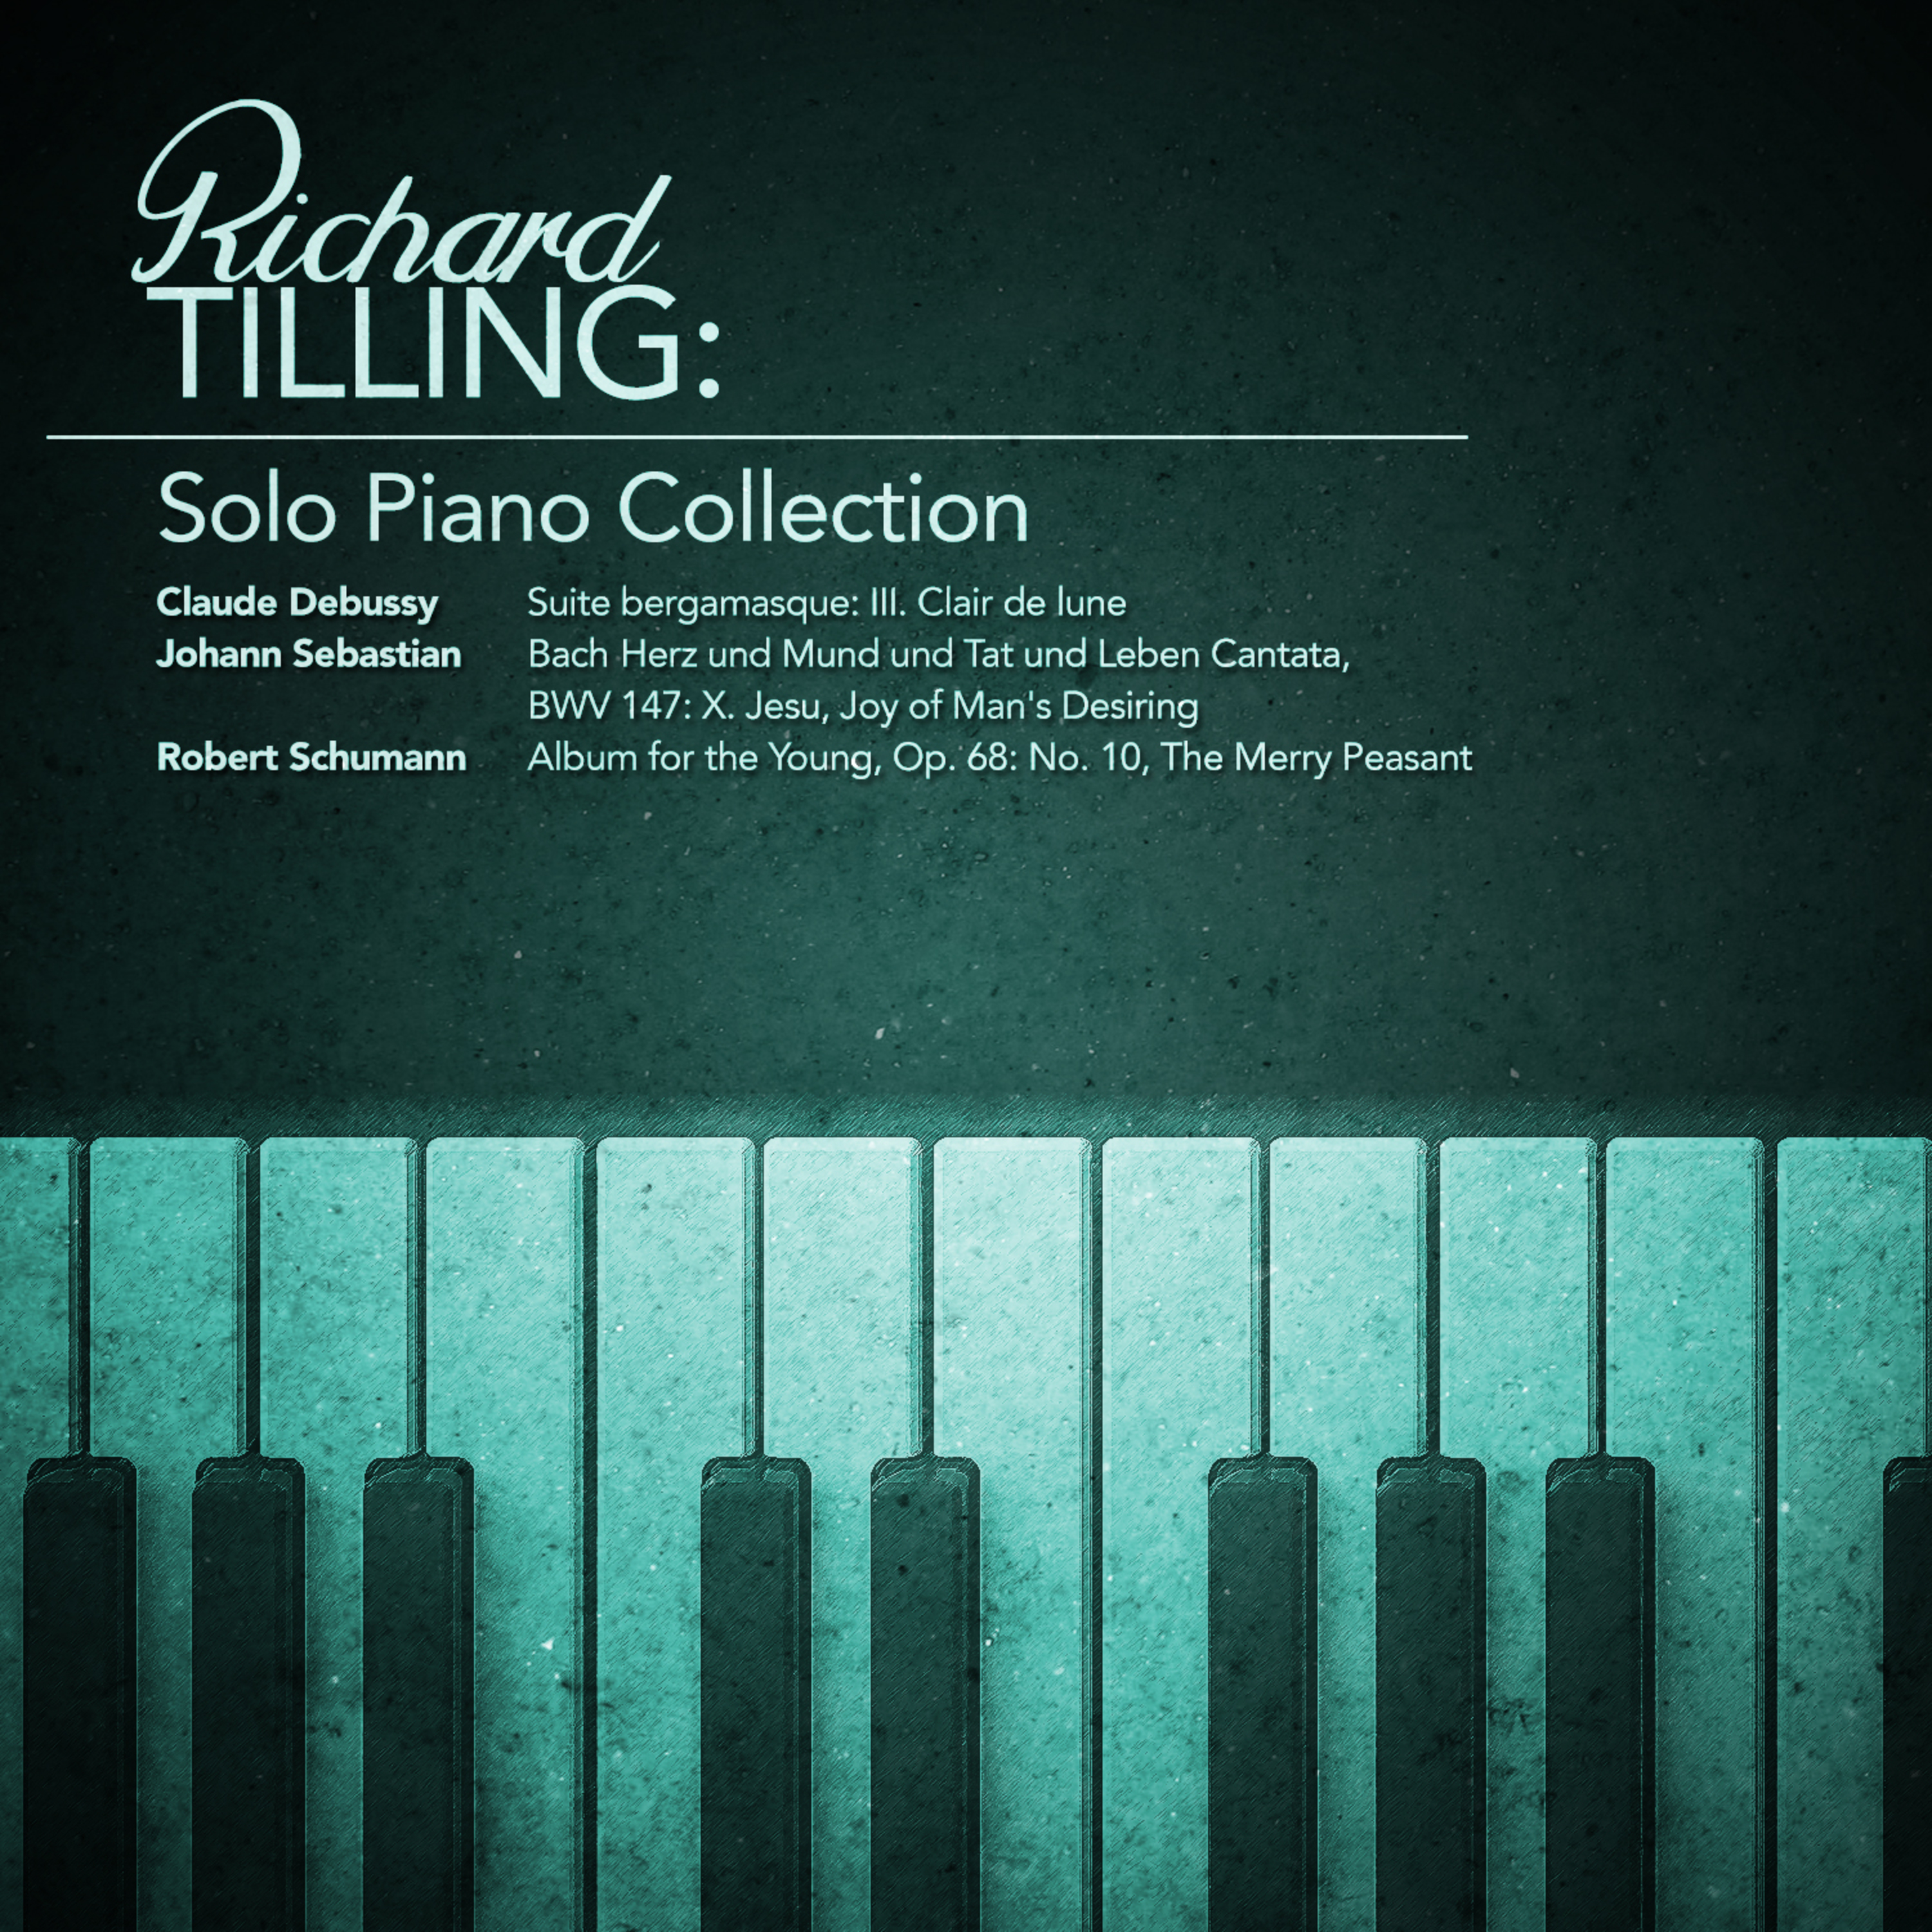 Richard Tilling: Solo Piano Collection - Overview